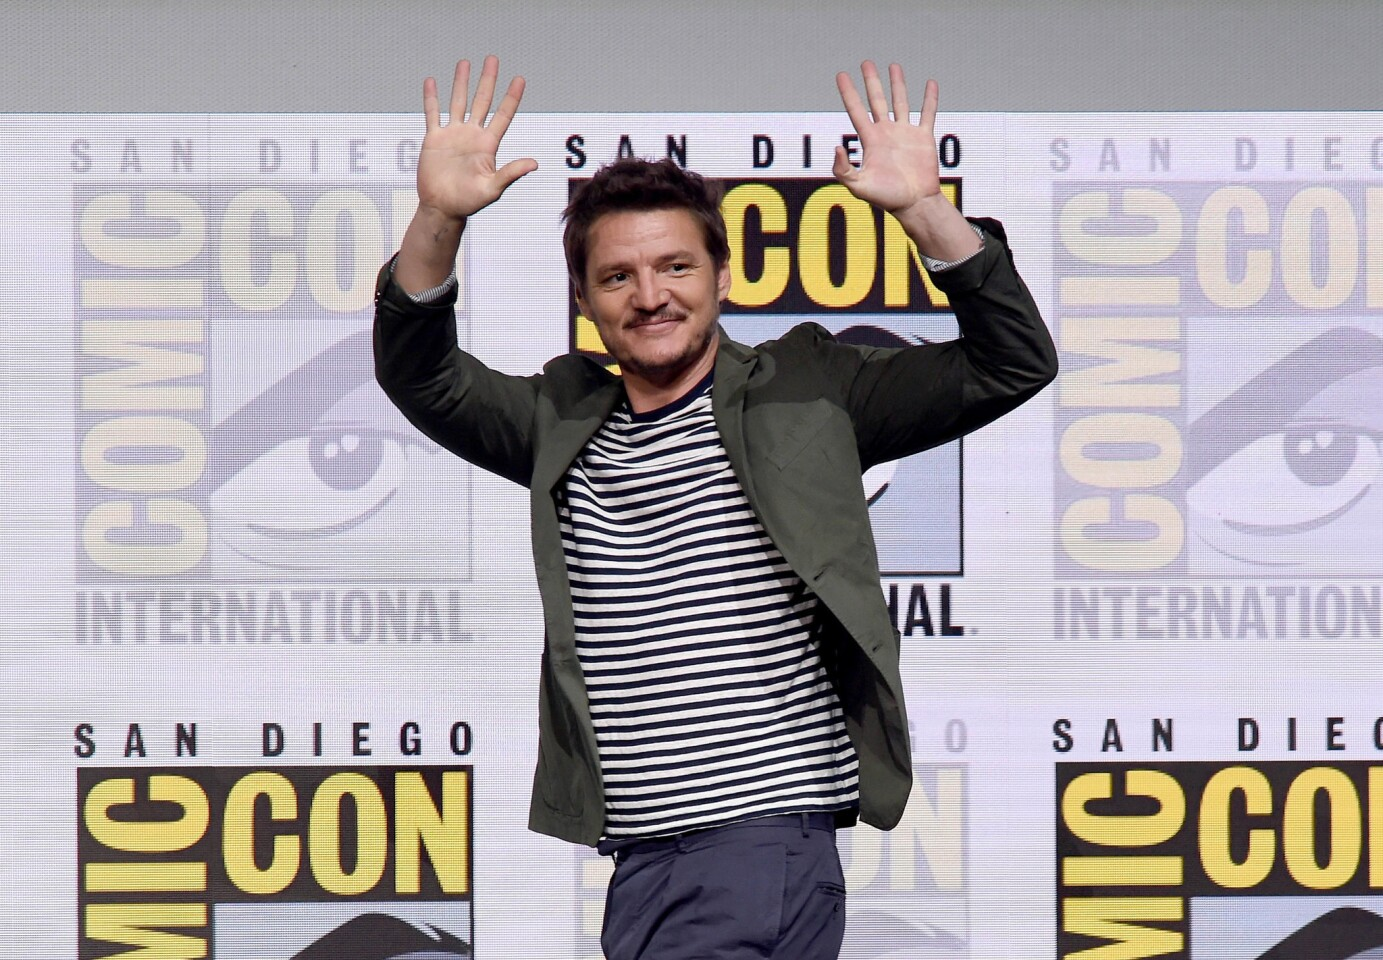 SAN DIEGO, CA - JULY 20: Actor Pedro Pascal walks onstage at the 20th Century FOX panel during Comic-Con International 2017 at San Diego Convention Center on July 20, 2017 in San Diego, California. (Photo by Kevin Winter/Getty Images) ** OUTS - ELSENT, FPG, CM - OUTS * NM, PH, VA if sourced by CT, LA or MoD **